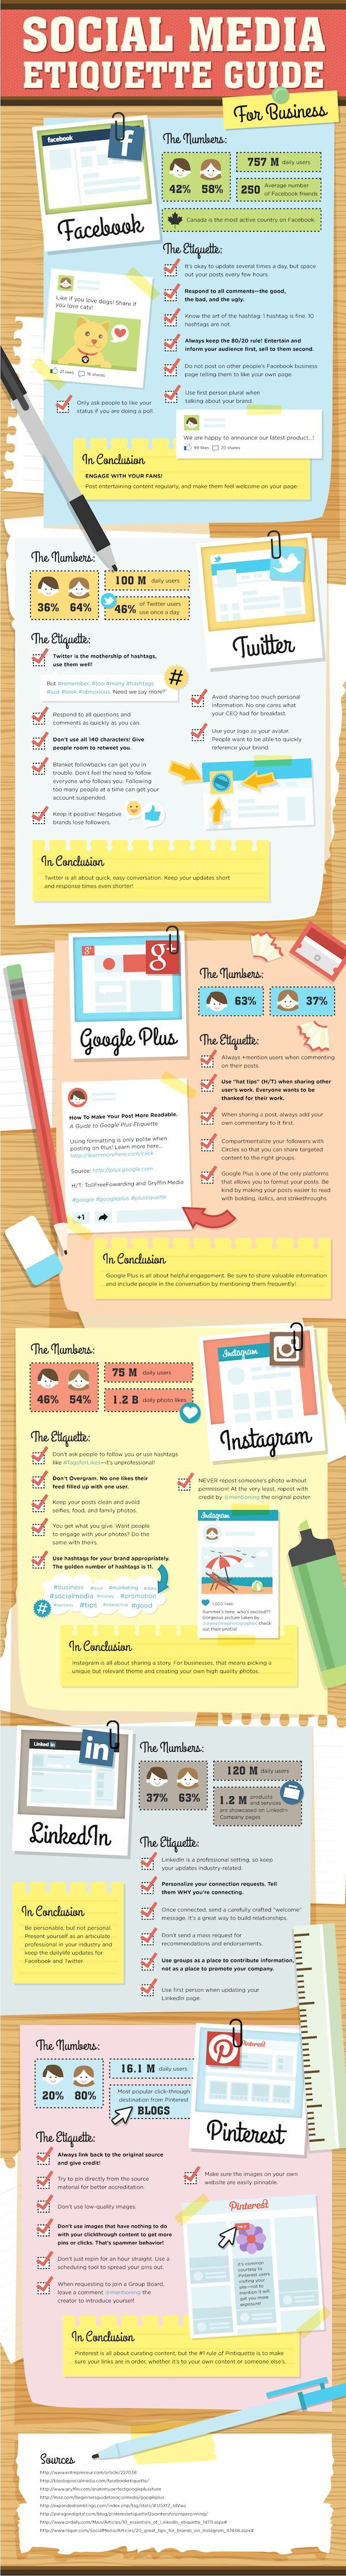 "SOCIAL MEDIA - ""A Social Media Etiquette Guide You Might Find Useful"". For Business.  Via http://www.OnlineBusinessTransformation.com/?refid=1007"